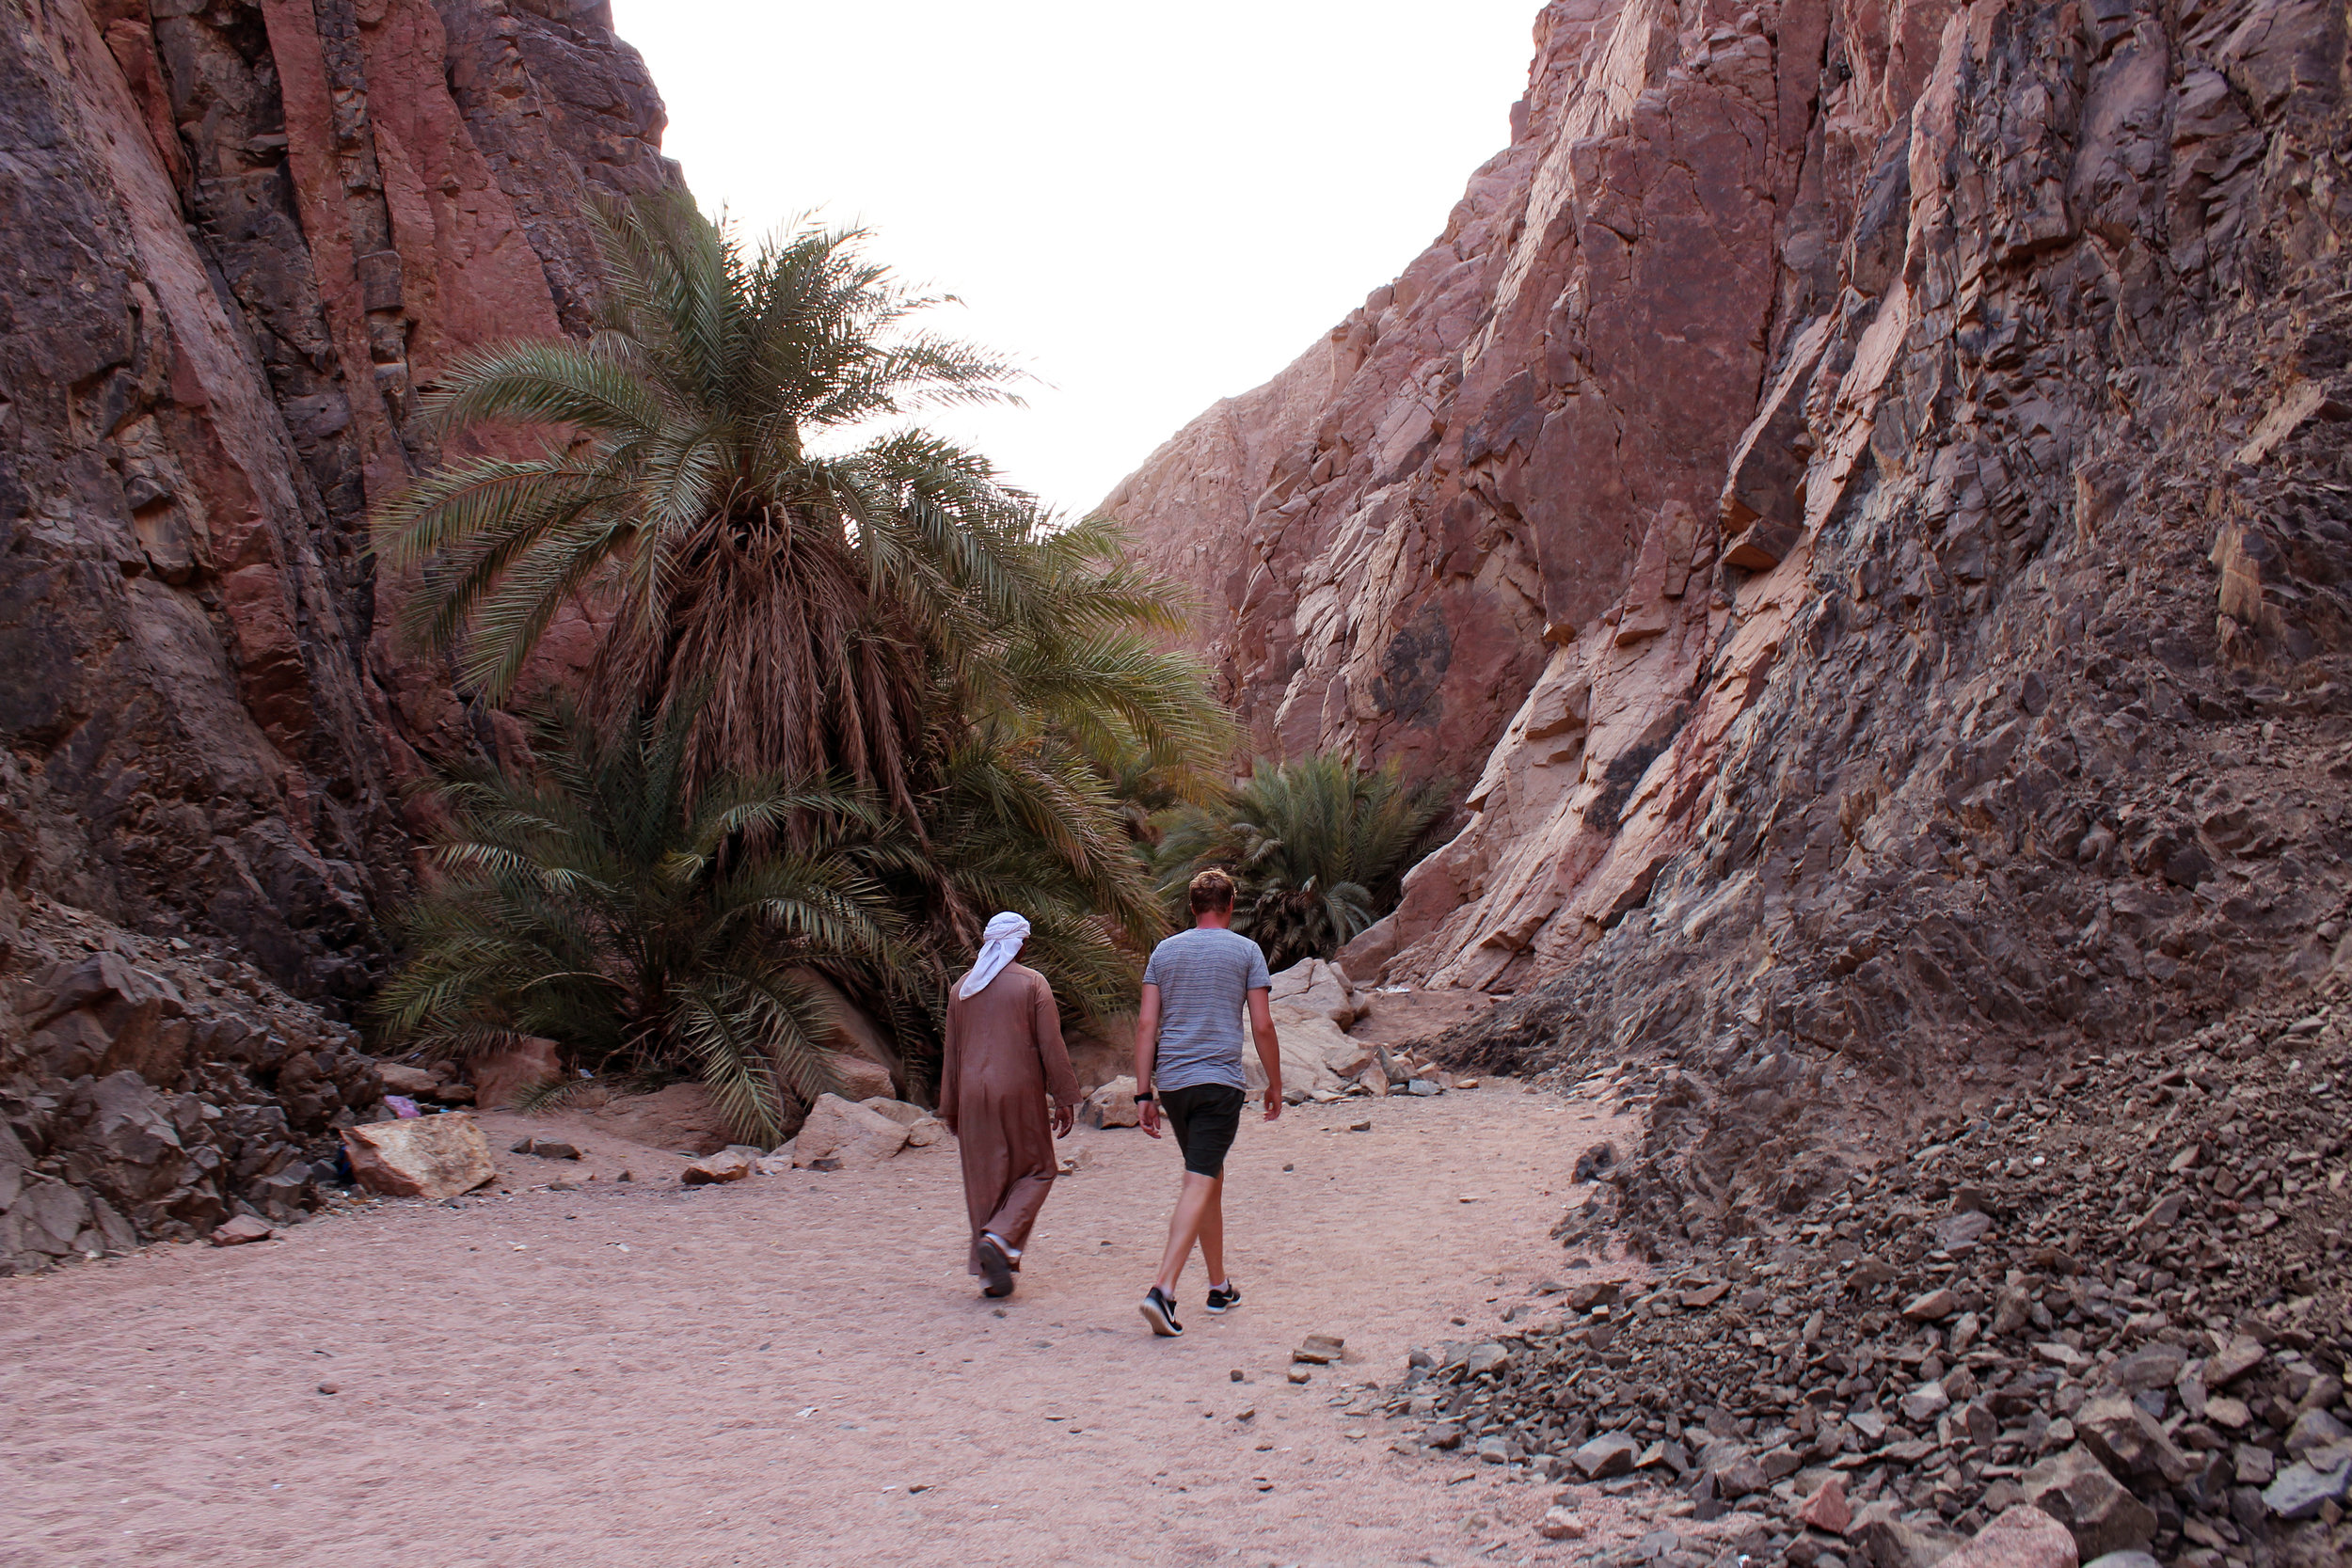 Dahab_Coachhouse_Egypt_Beach_Red_Sea_Trip_Wadi_Gnai_Camel_Mountain_Granite_Bedouin_Date_Palms_Oasis.JPG